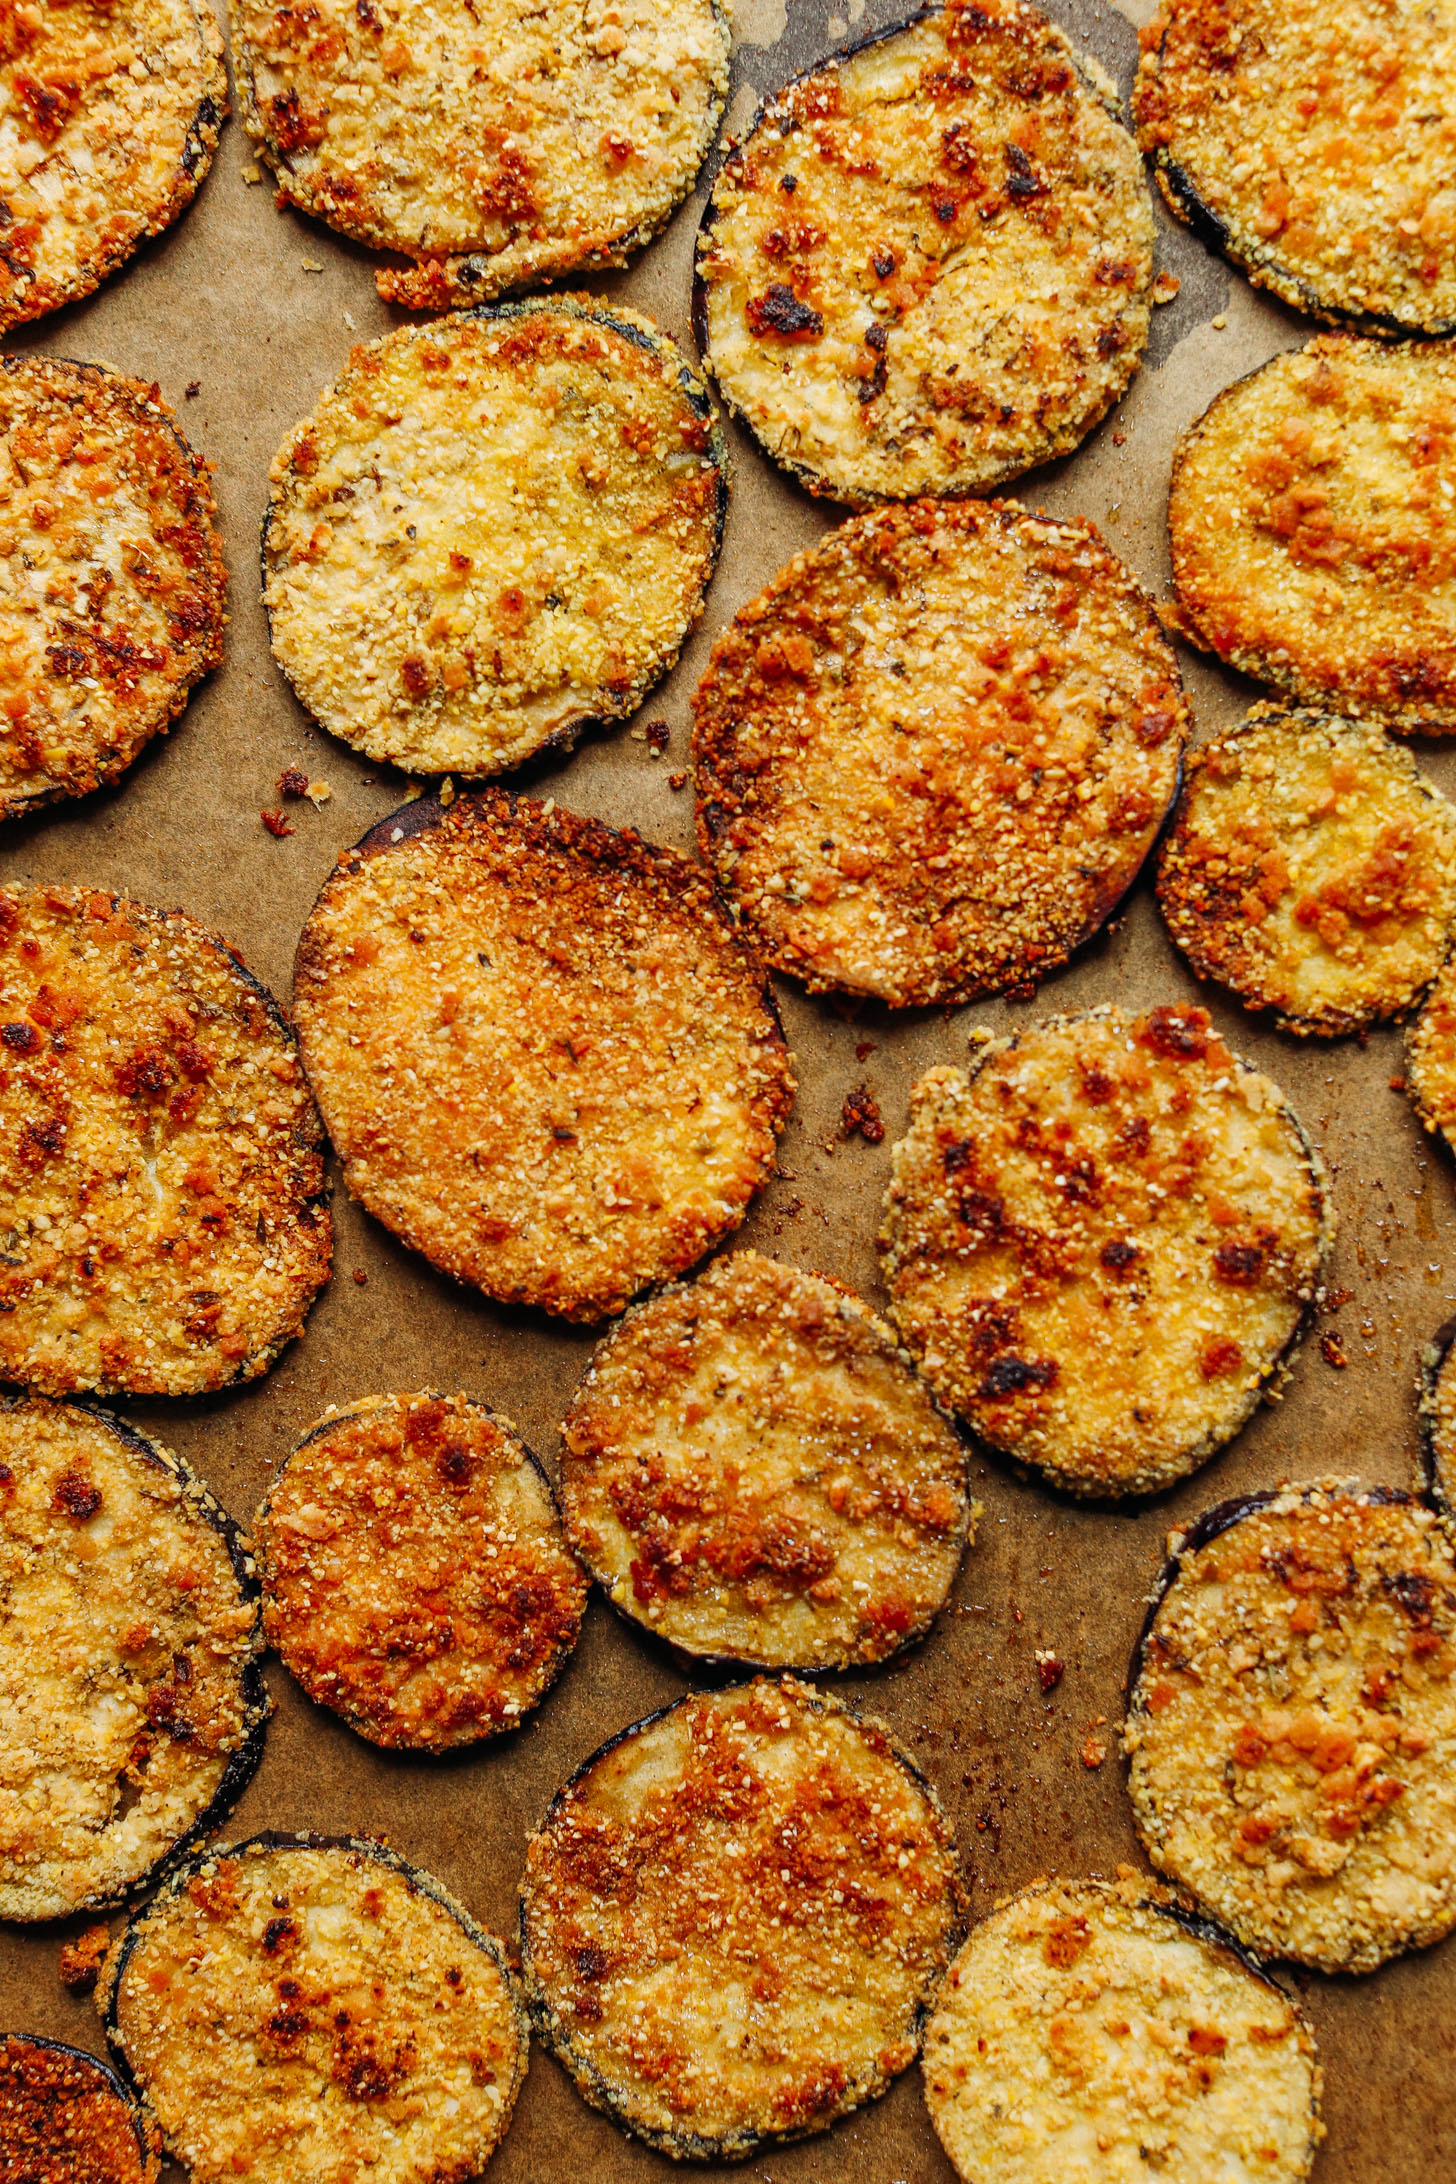 Vegan Gluten-Free Crispy Eggplant Parmesan fresh from the oven on a parchment-lined baking sheet